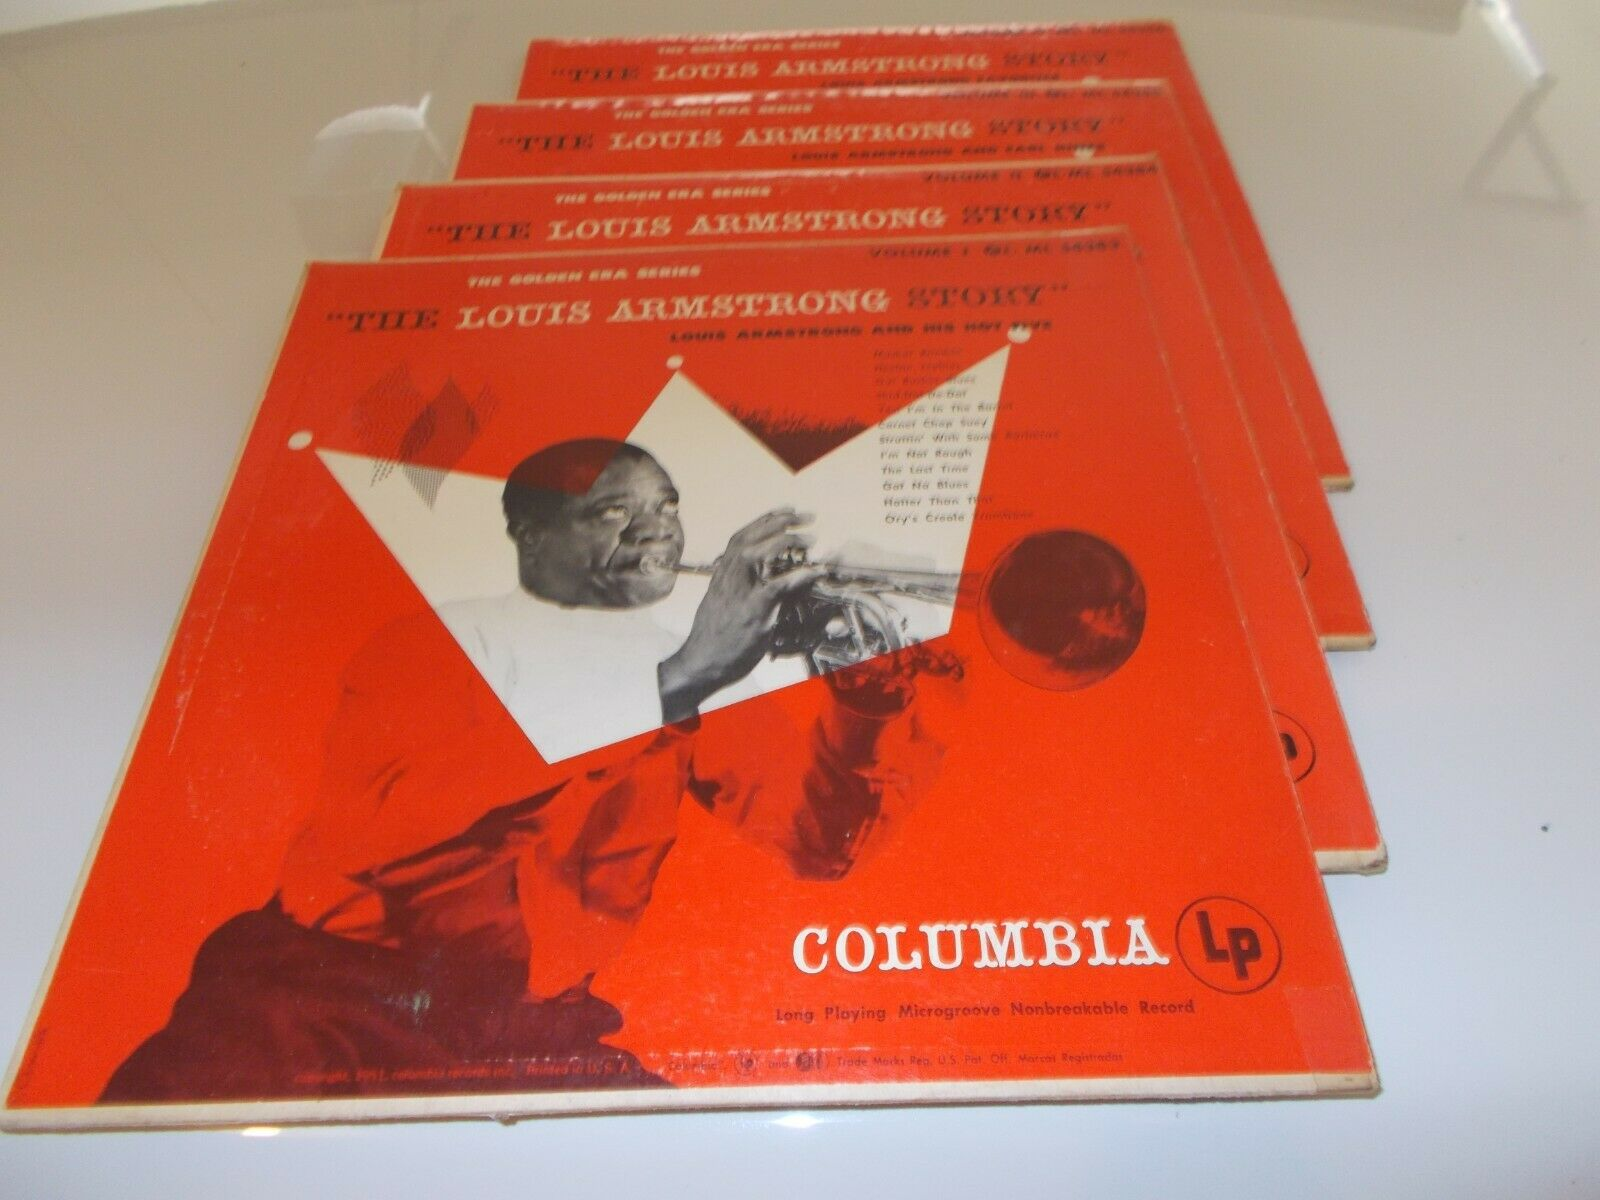 """""""THE LOUIS ARMSTRONG STORY"""" Album - (Volumes 1, 2, 3 and 4)"""